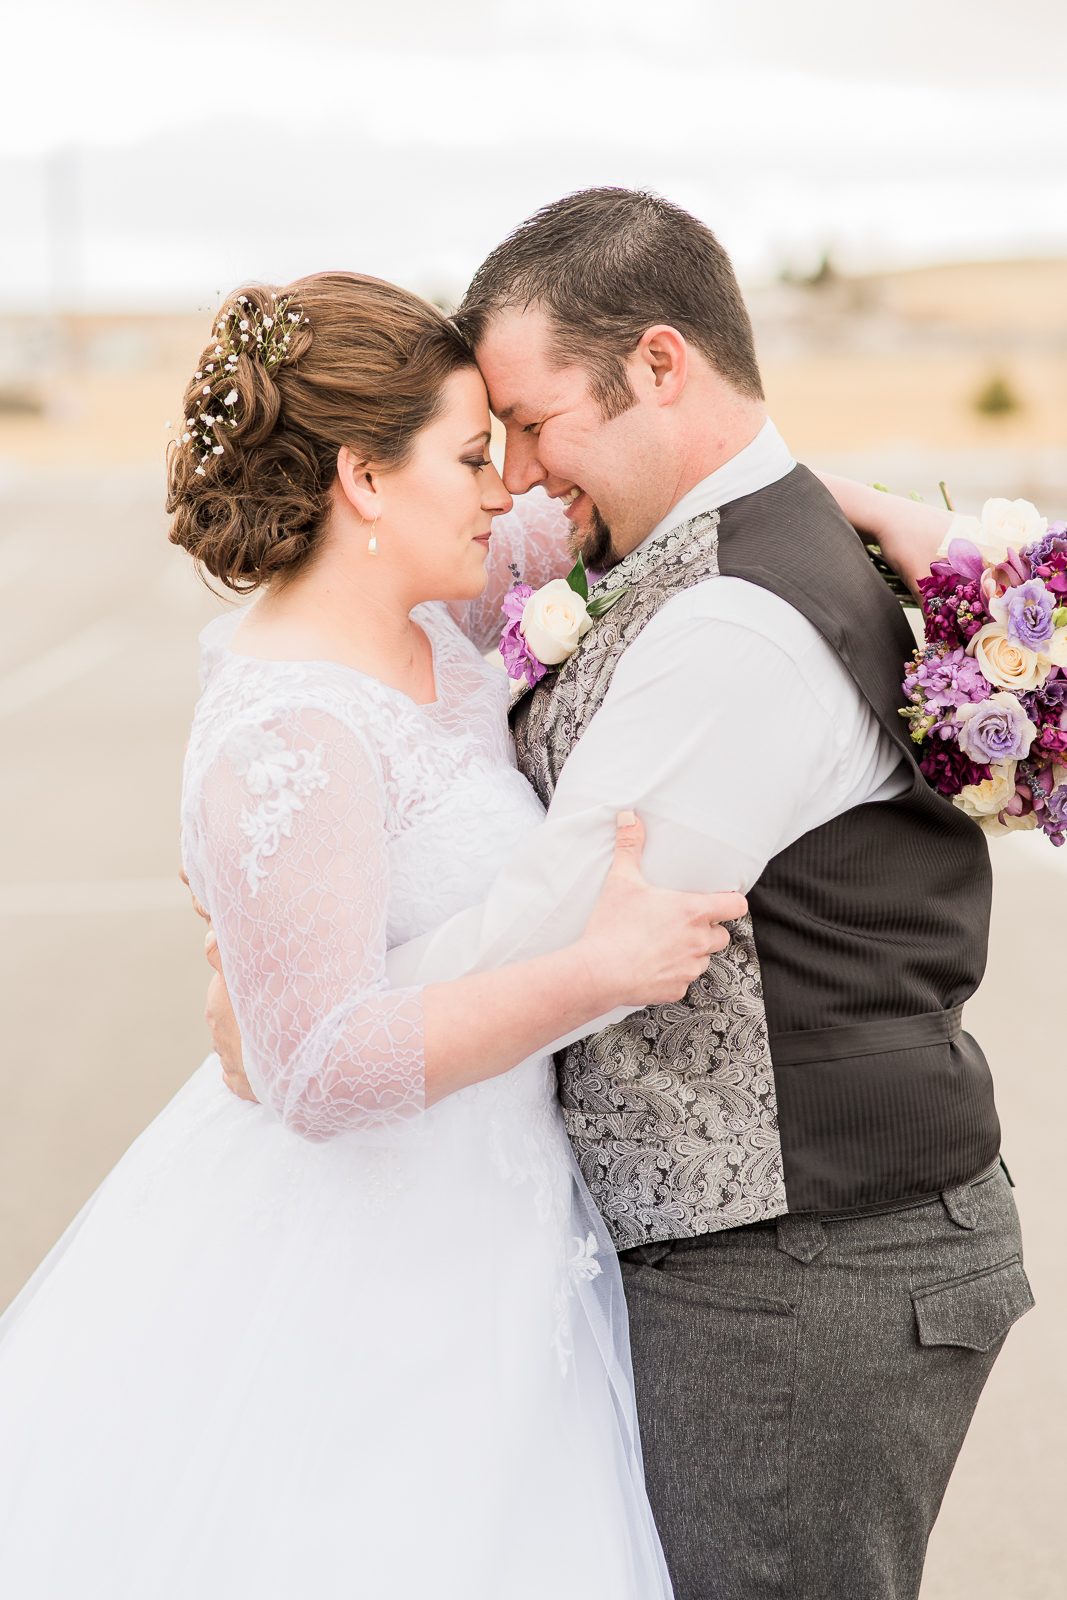 Laramie Wyoming Church wedding in winter, photographed by Megan Lee Photography.